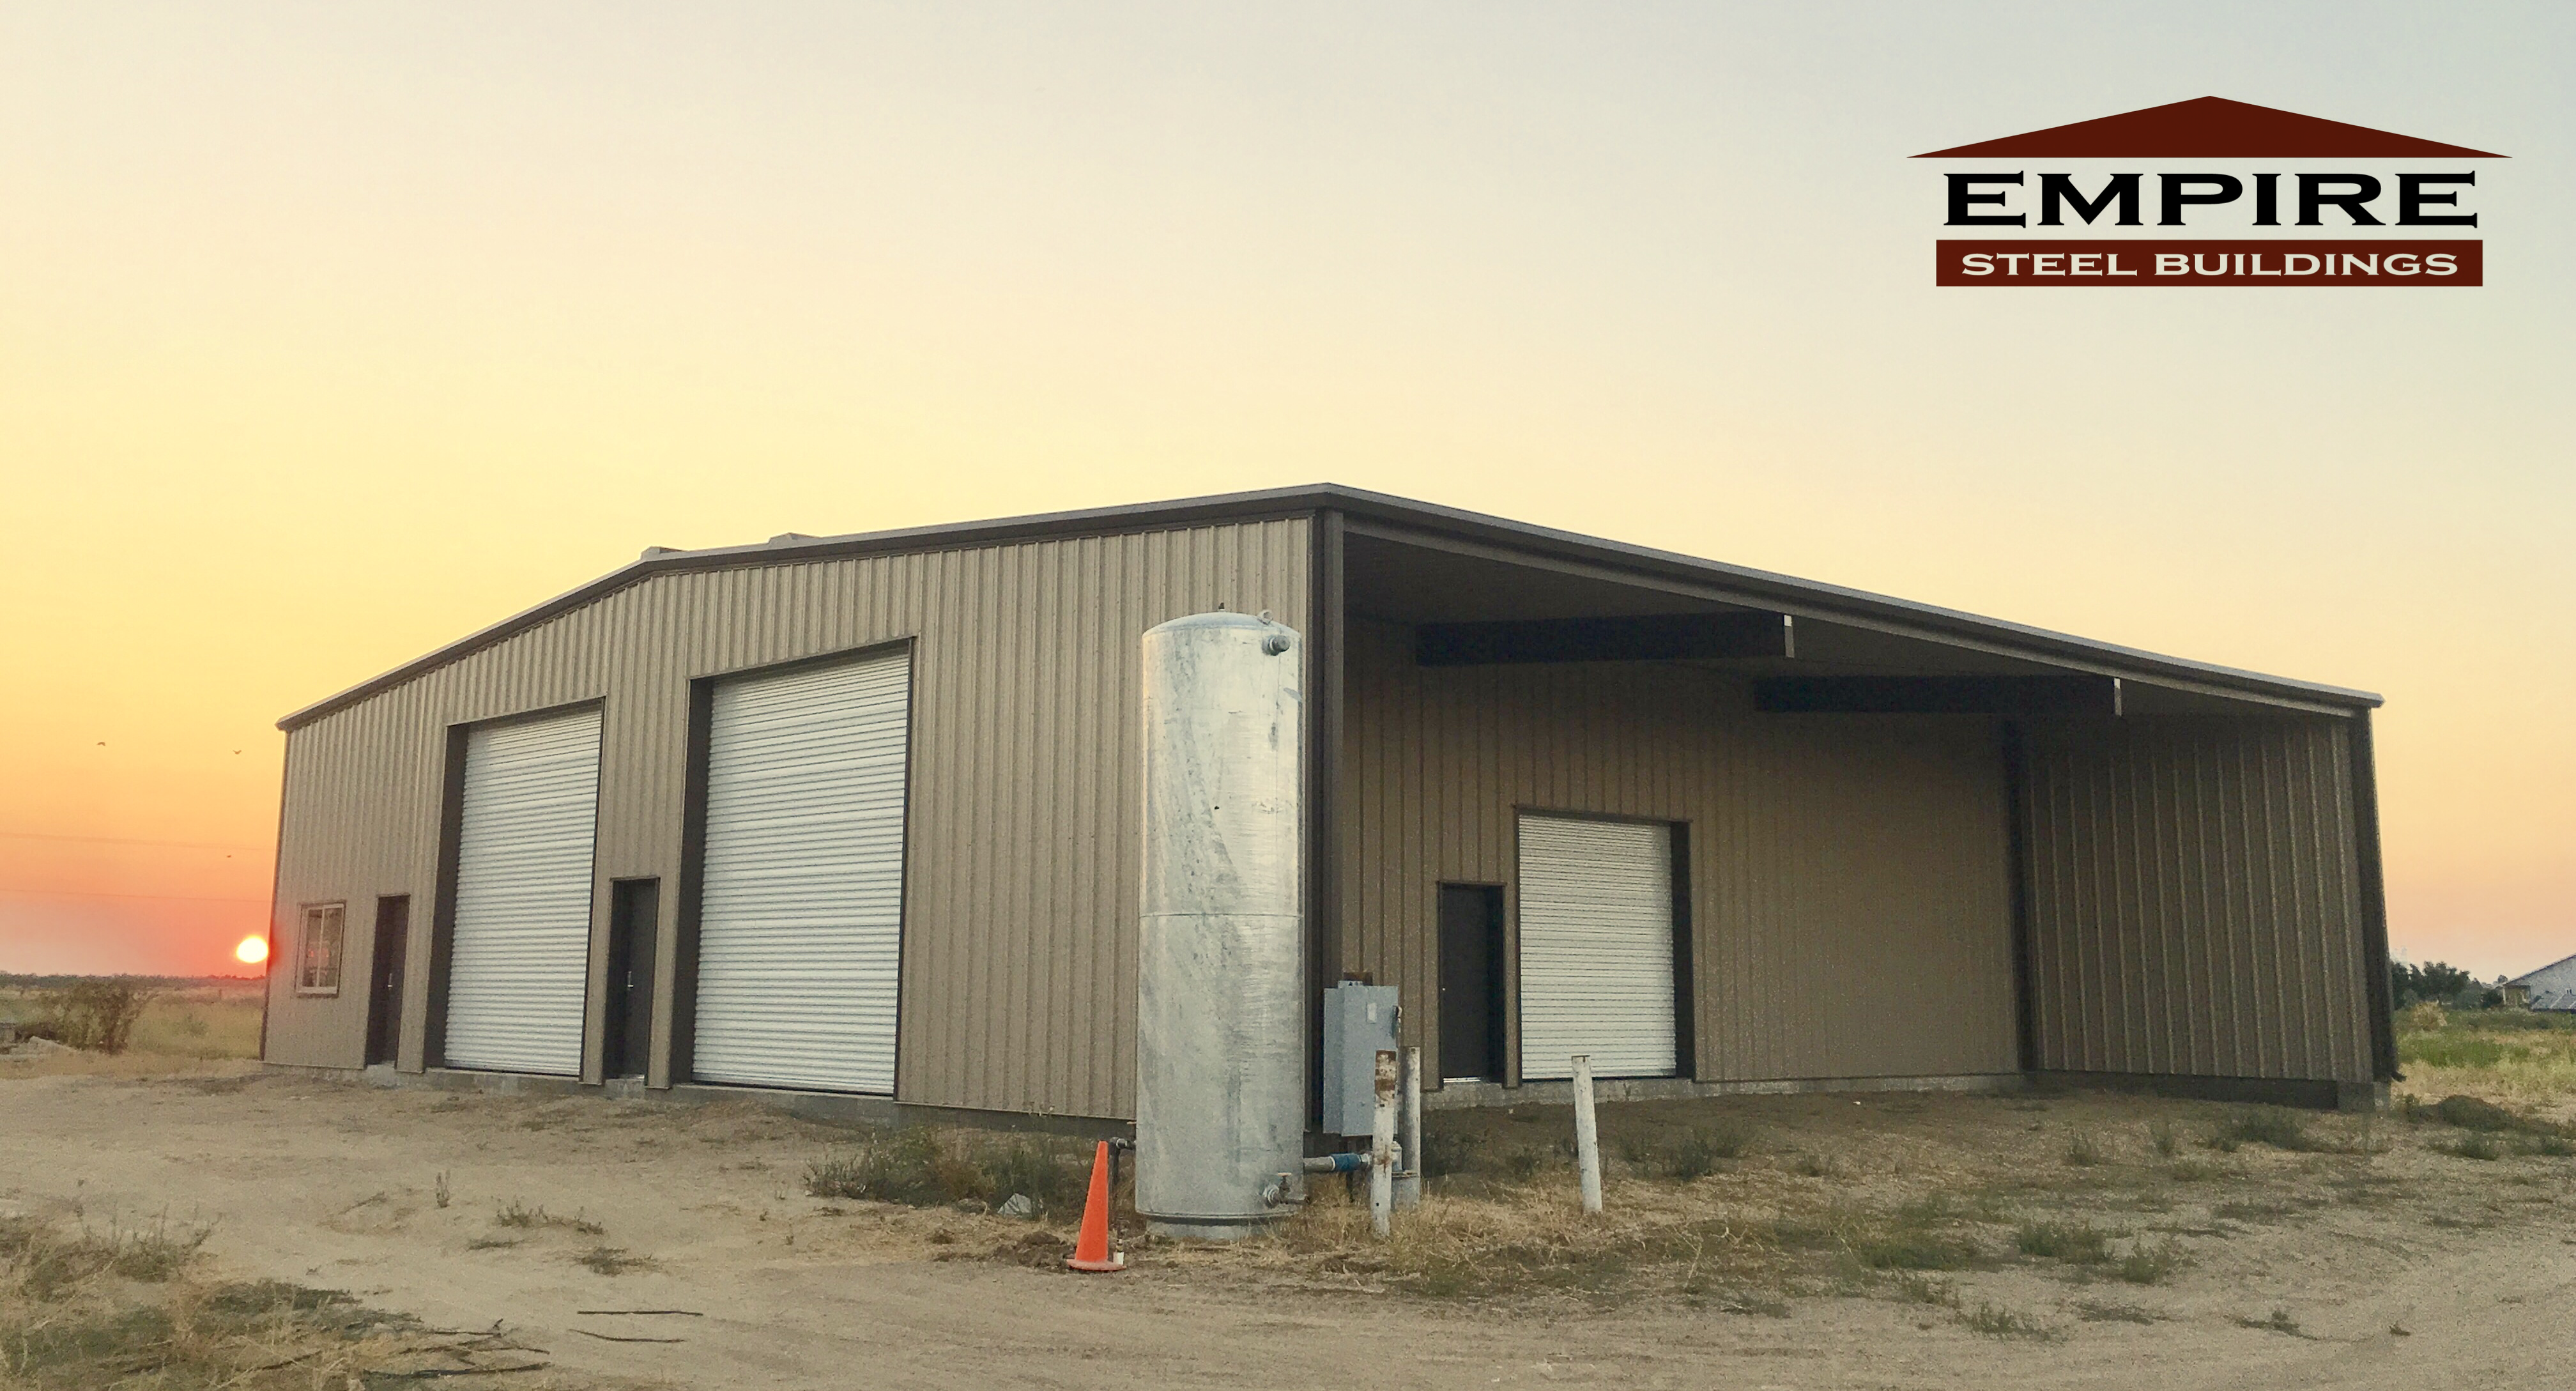 40 X 60 X 17 Steel Building In Turlock Ca Provided By Empire Steel Buildings Steel Buildings Building Outdoor Decor